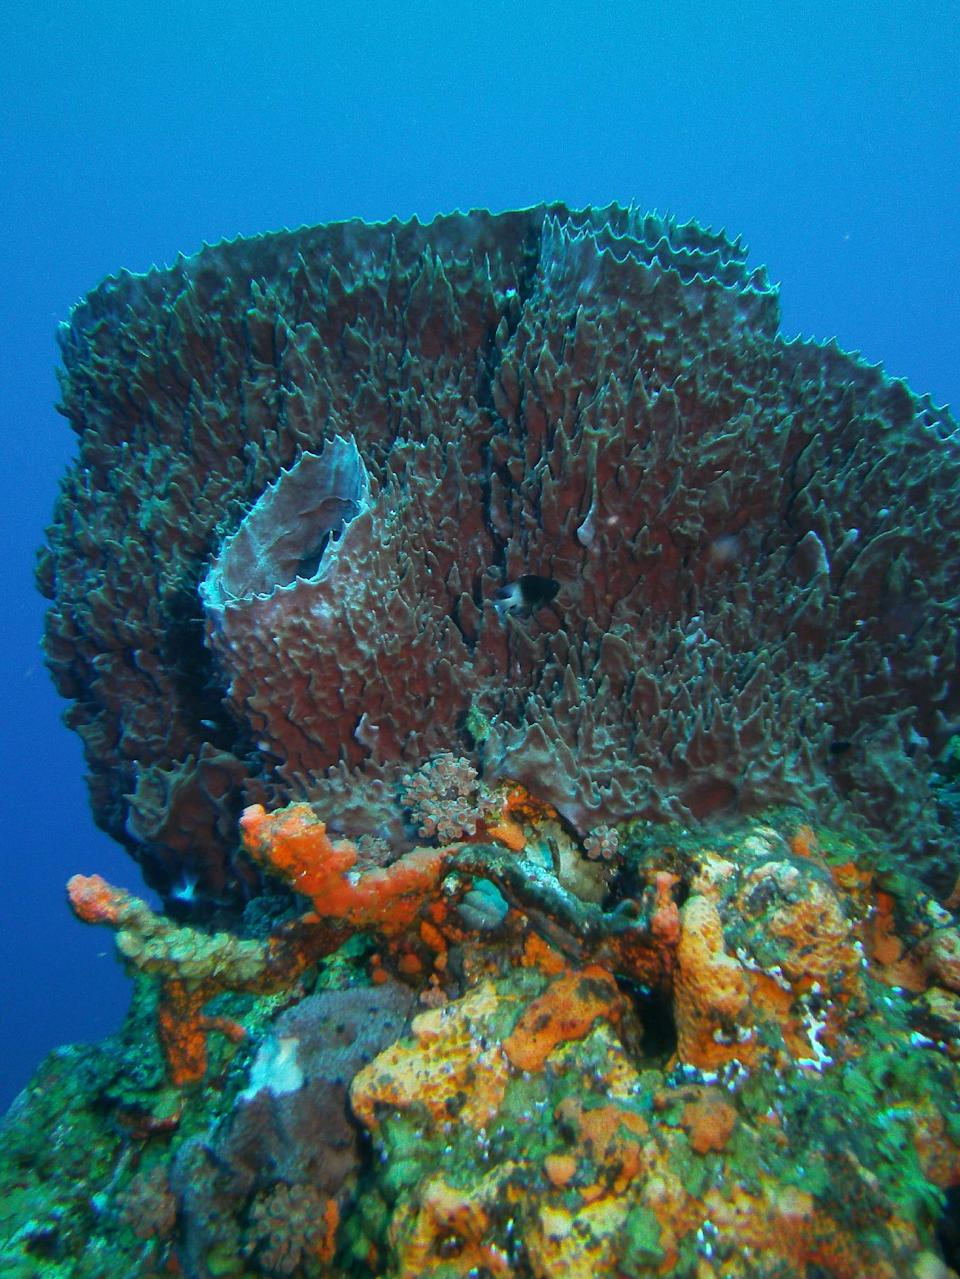 This May 3, 2012 photo shows a giant barrel sponge in the Saba Marine Park in Saba in the Caribbean. Saba is a Dutch municipality popular with divers. (AP Photo/Brian Witte)